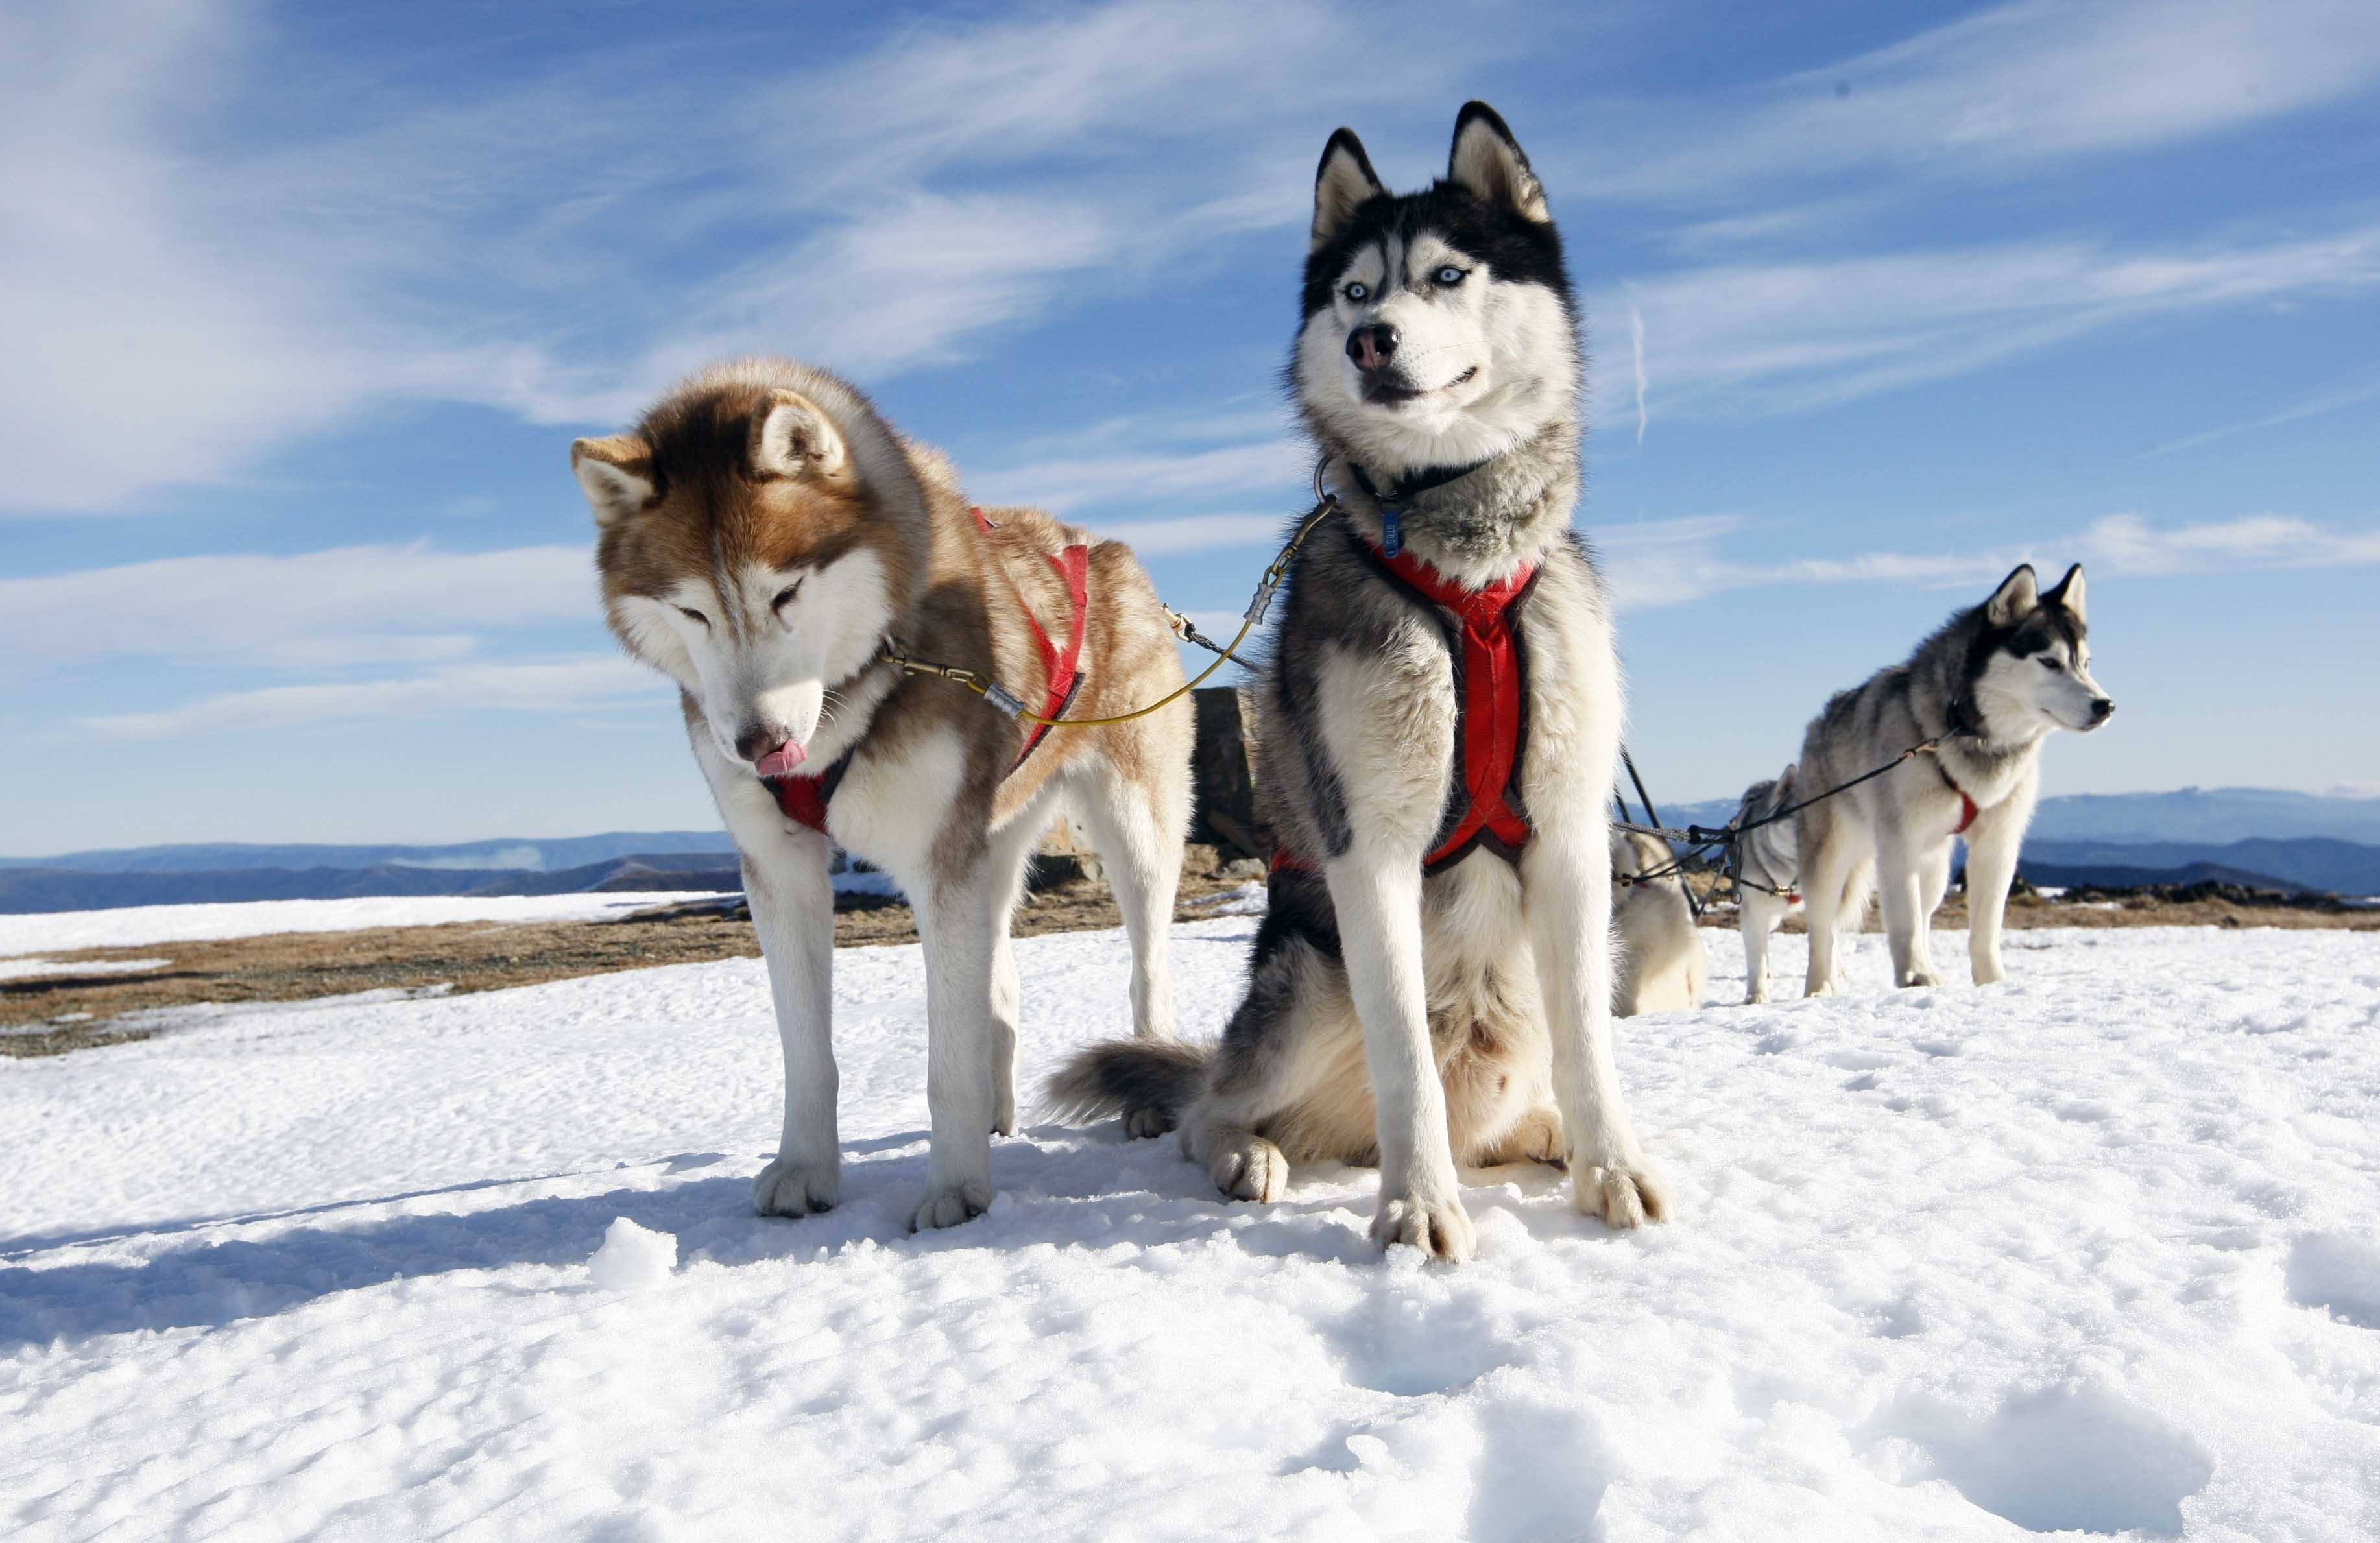 67760 download wallpaper Animals, Husky, Couple, Pair, Dogs, Snow, Alaska screensavers and pictures for free